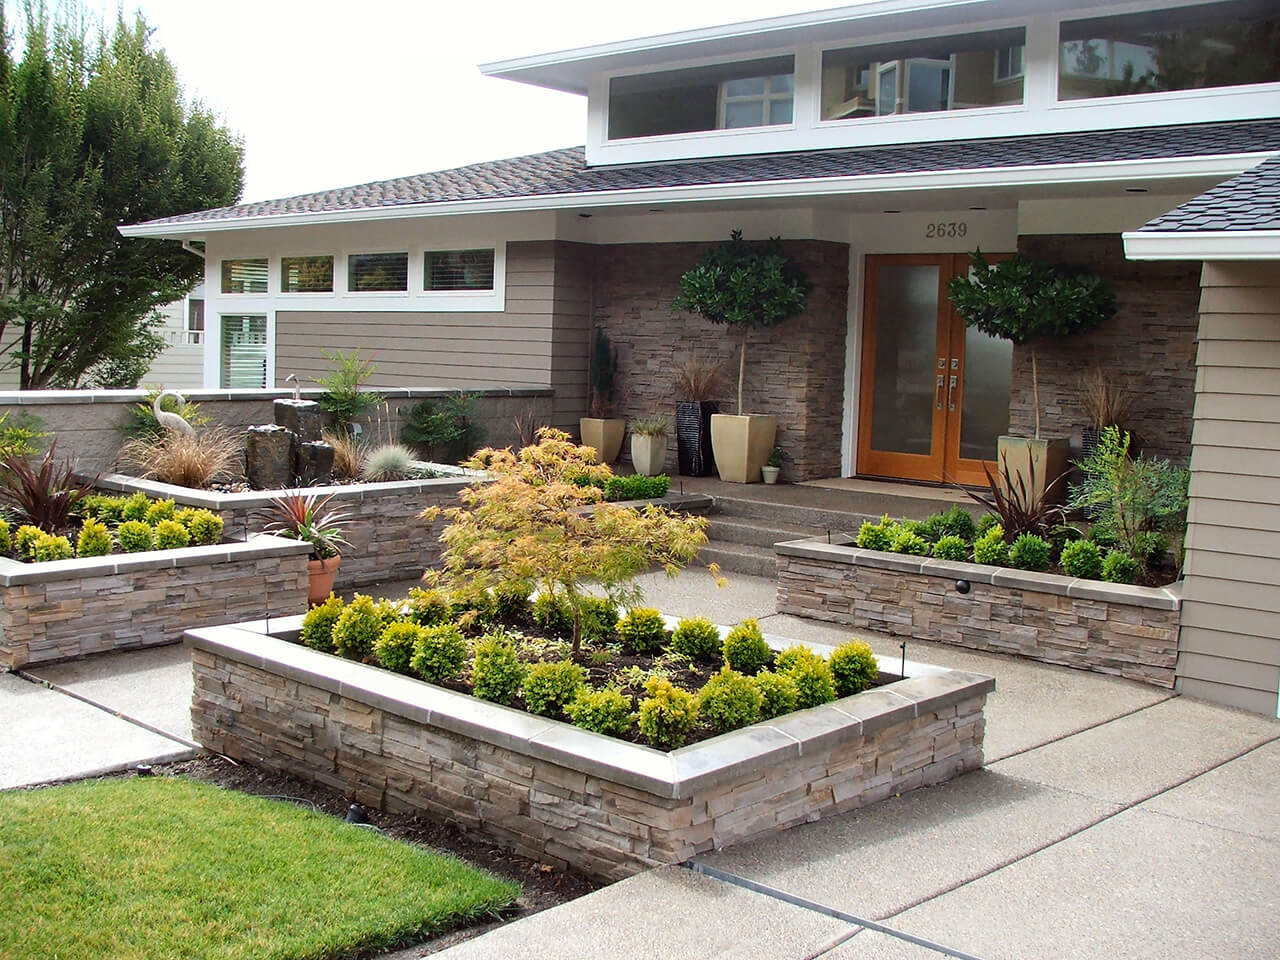 20 Brilliant Front Garden Landscaping Ideas on Backyard Garden Design id=68072